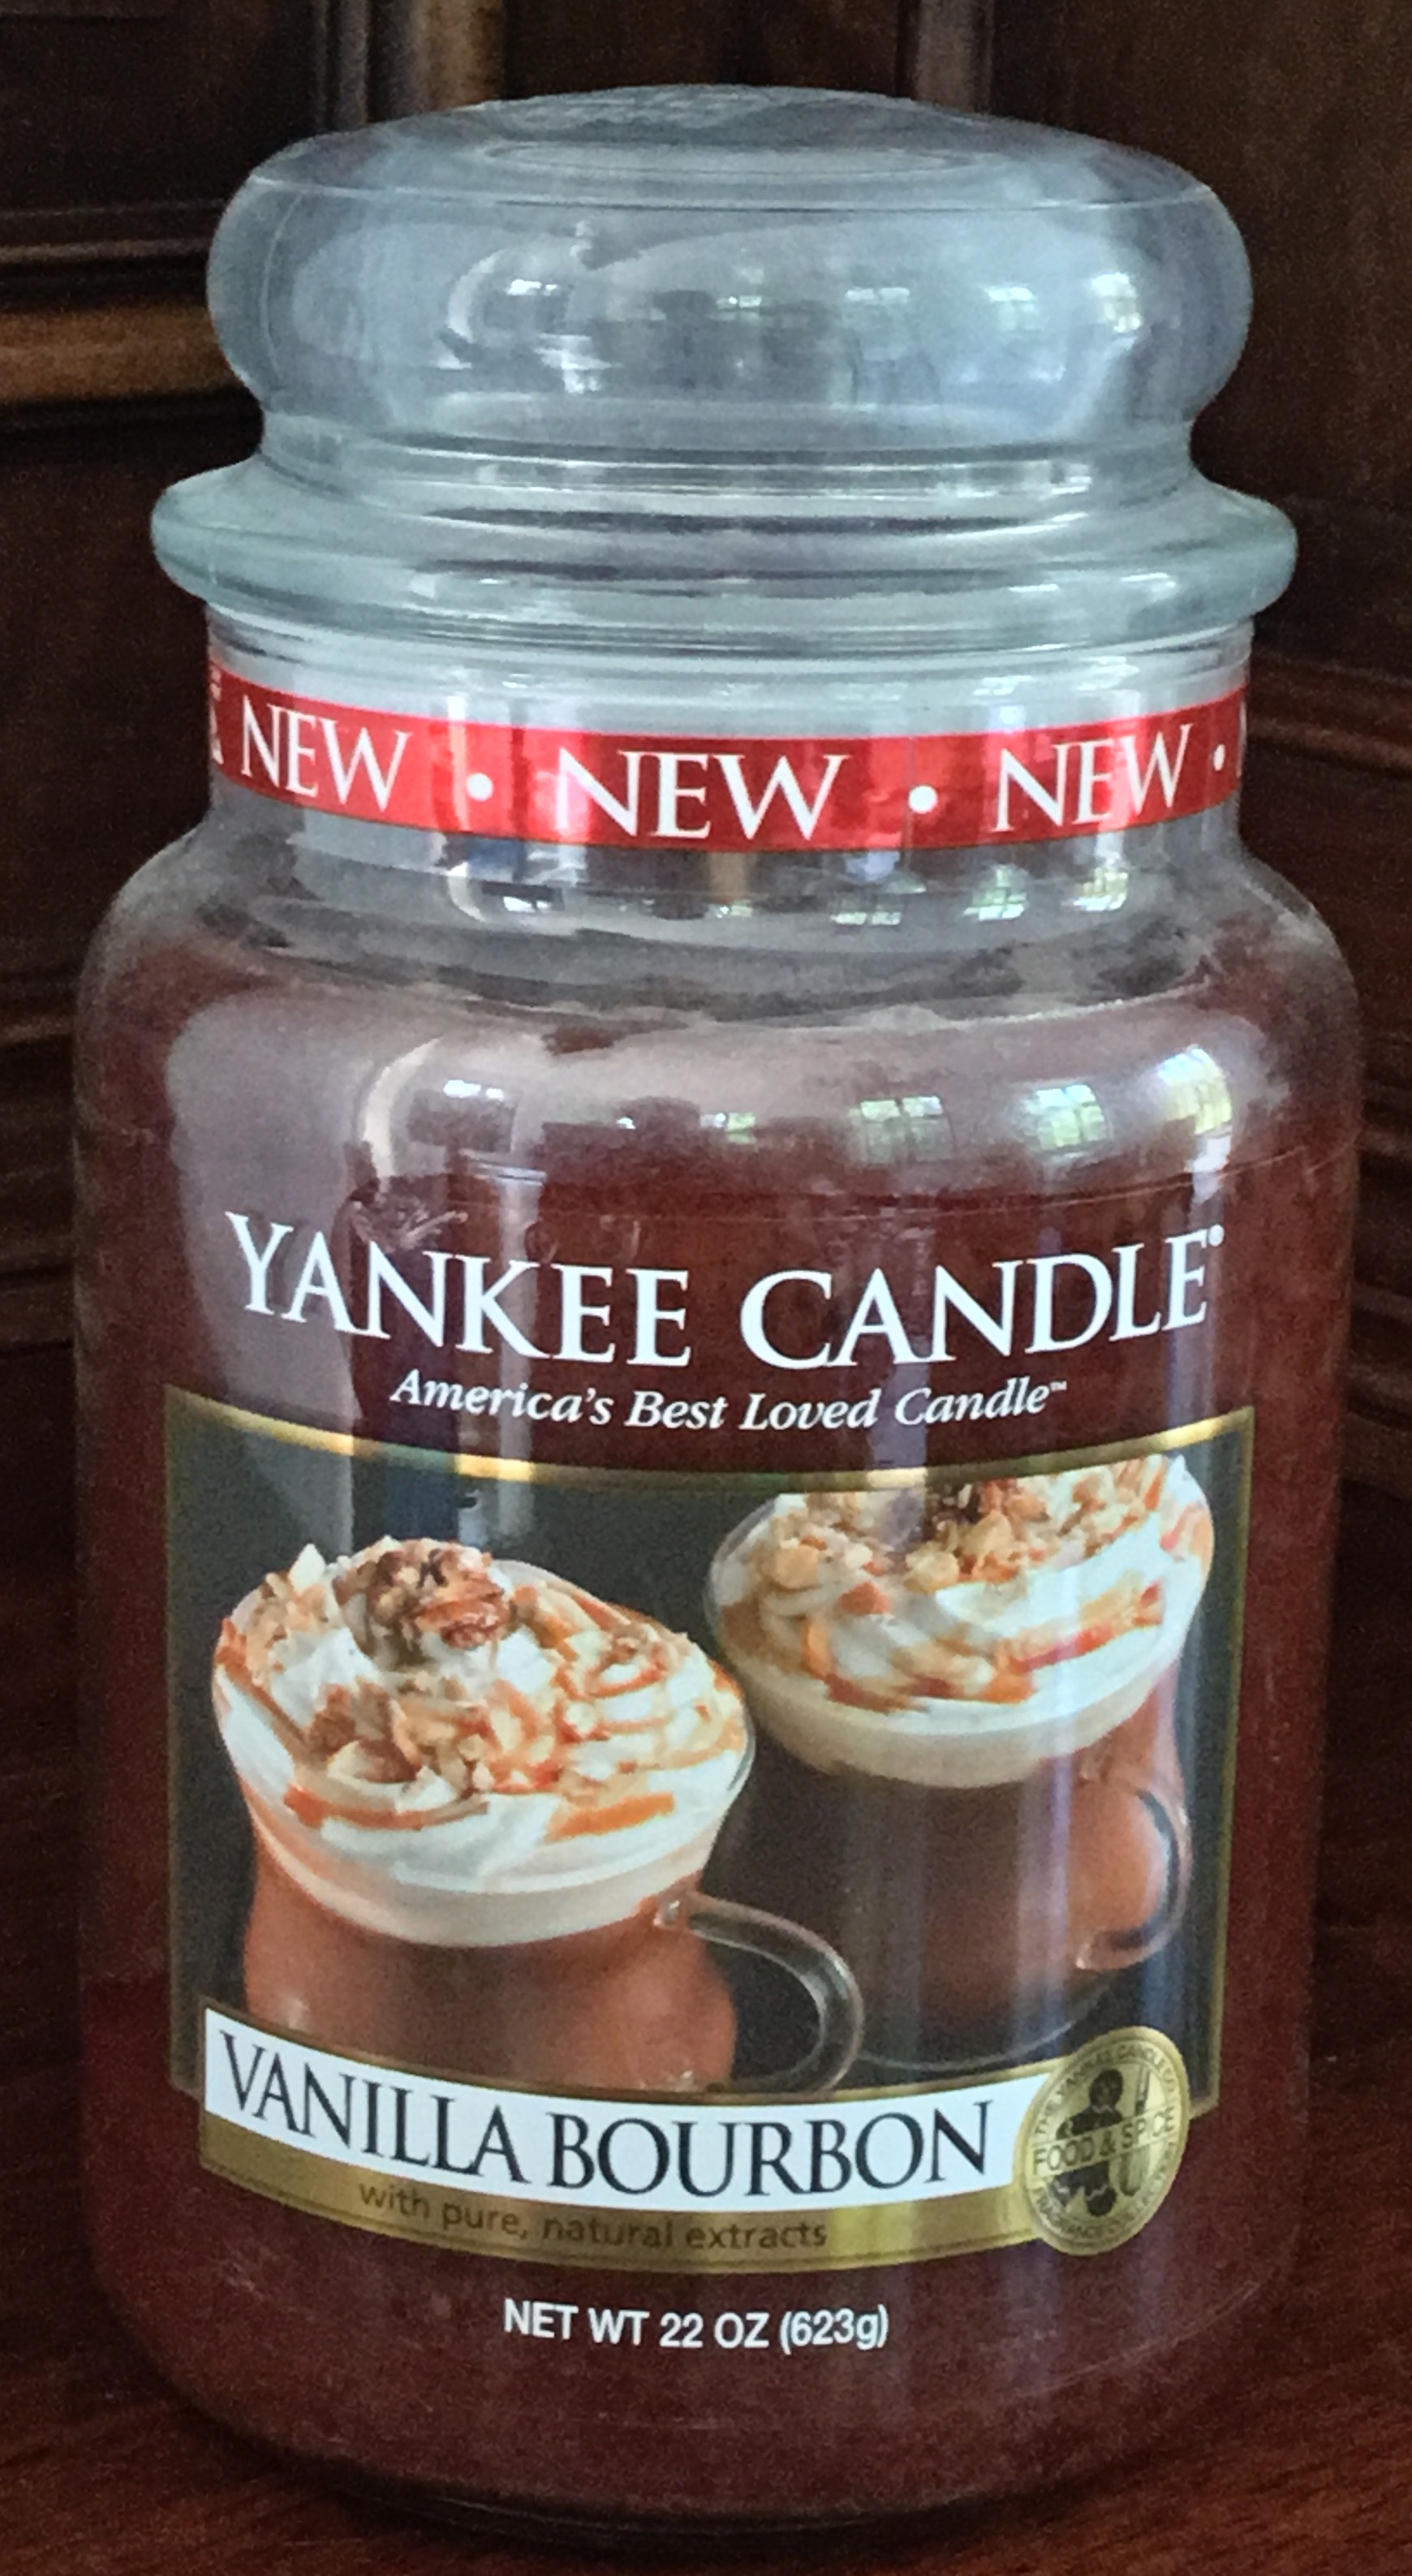 Yankee Candle Vanilla Bourbon Candle